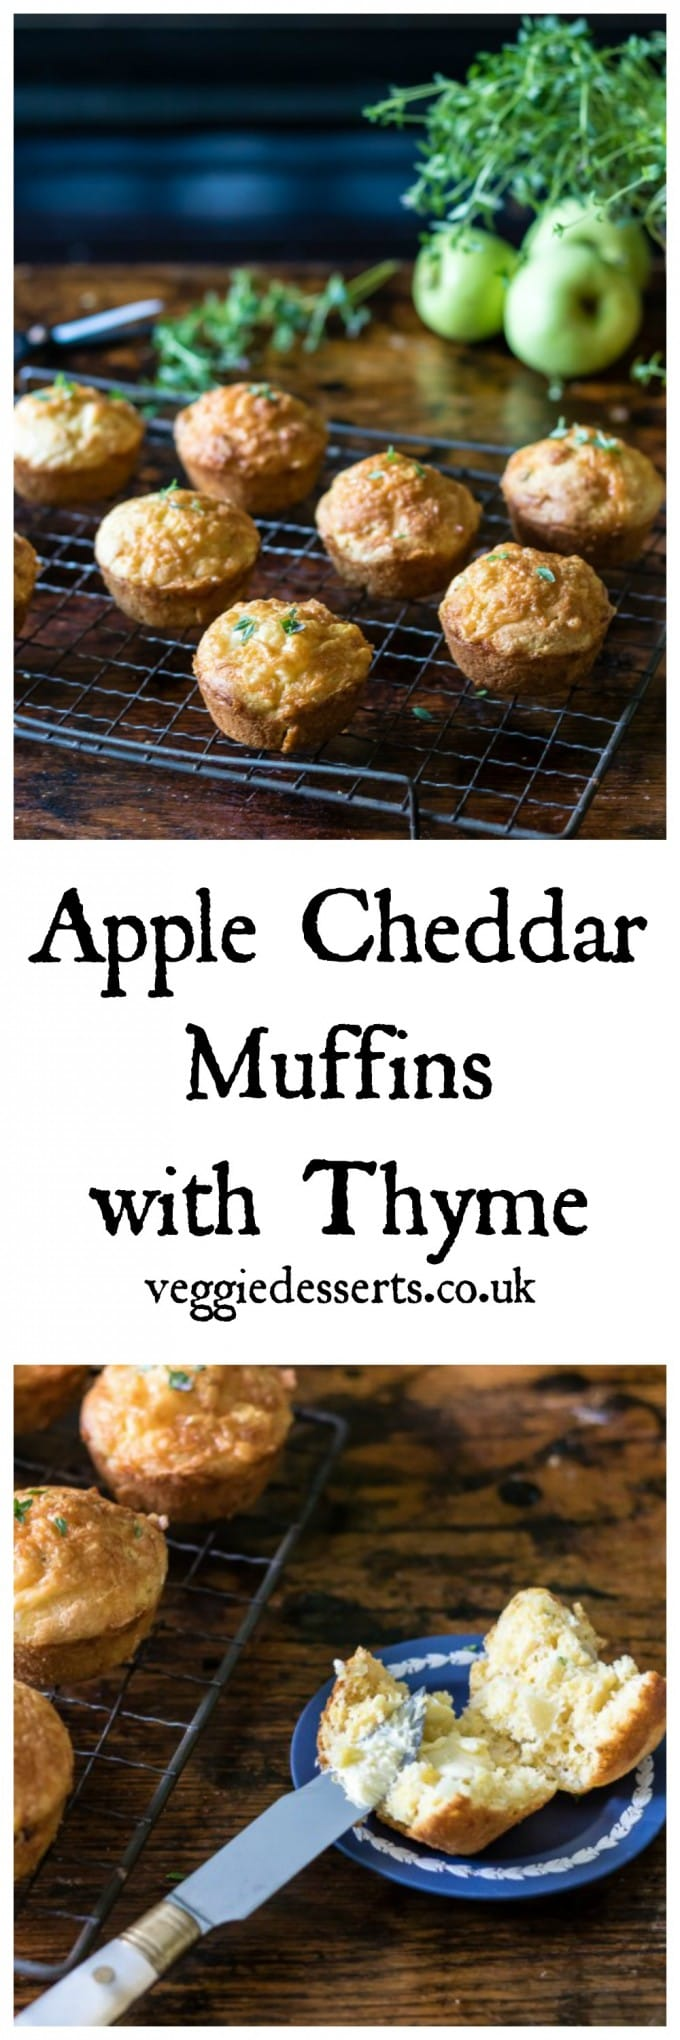 Apple Cheddar Muffins with Thyme - -These muffins are really quick and easy to make. Just mix a few ingredients together, pour into the muffin tray and bake. Voila - 20 minutes later you have lovely fresh savoury muffins! #savourymuffins #muffins #cheddarmuffins #applecheddar #cheesemuffins